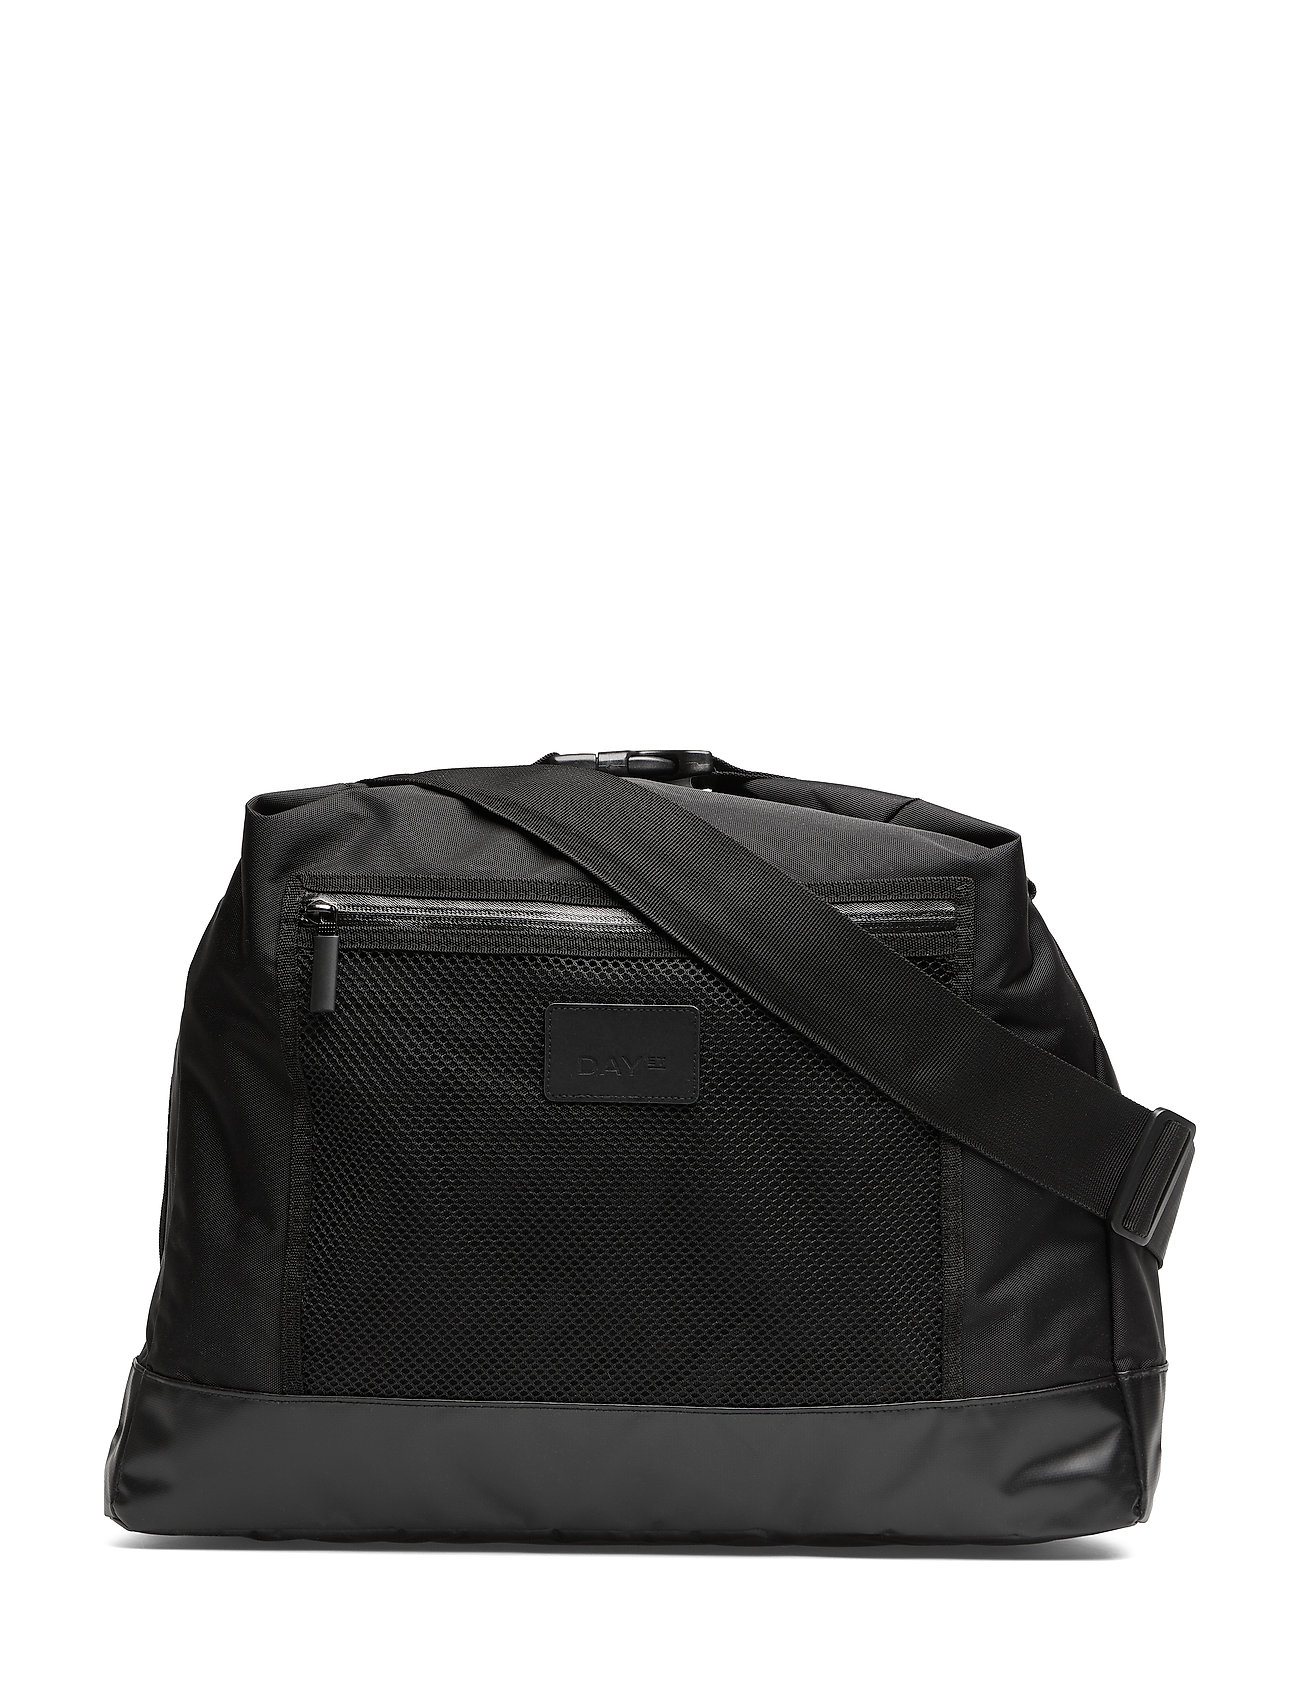 Image of Day Athluxury Sport Bag Bags Weekend & Gym Bags Sort DAY Et (3274622253)